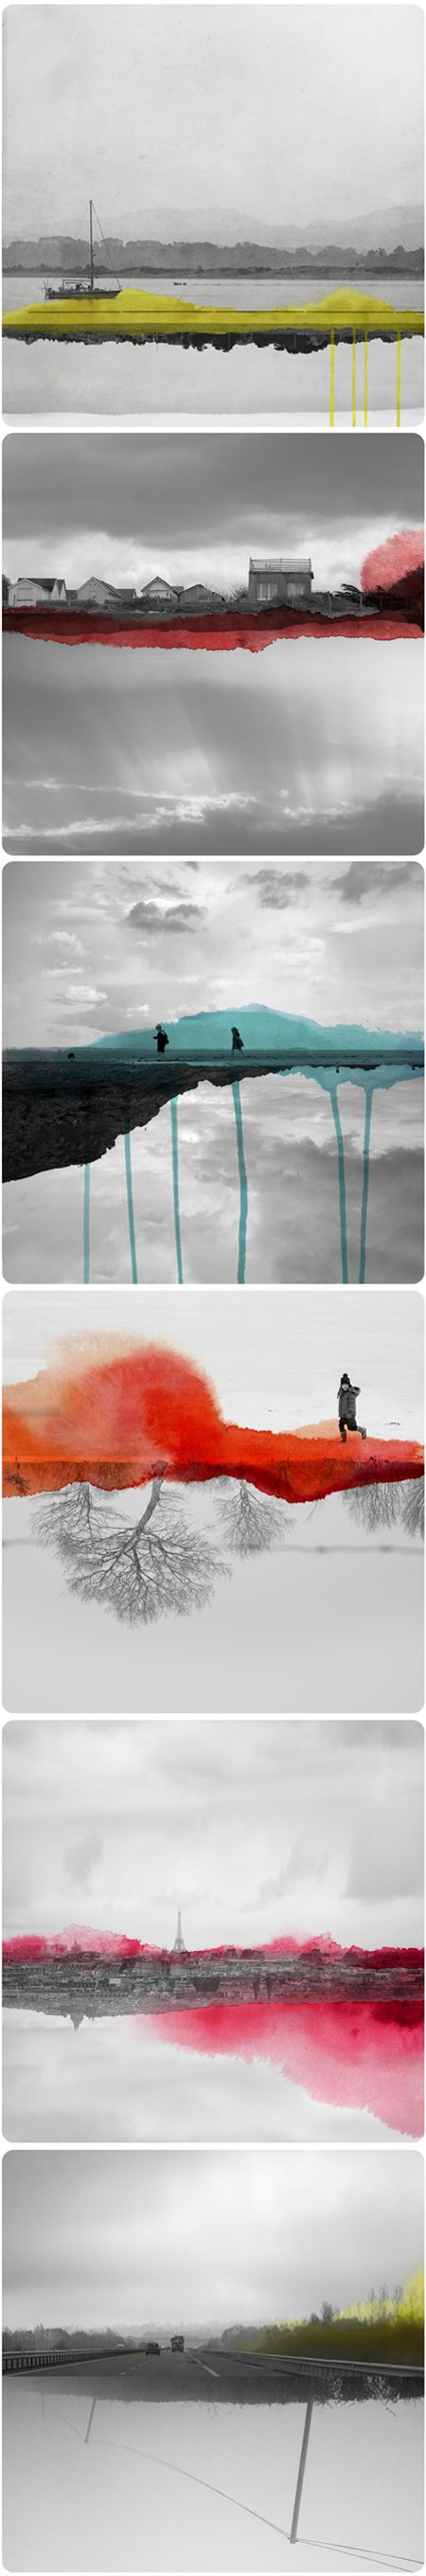 """Miroir"" series {mirrored photographs & watercolor paint} by Fabienne Rivory <3"